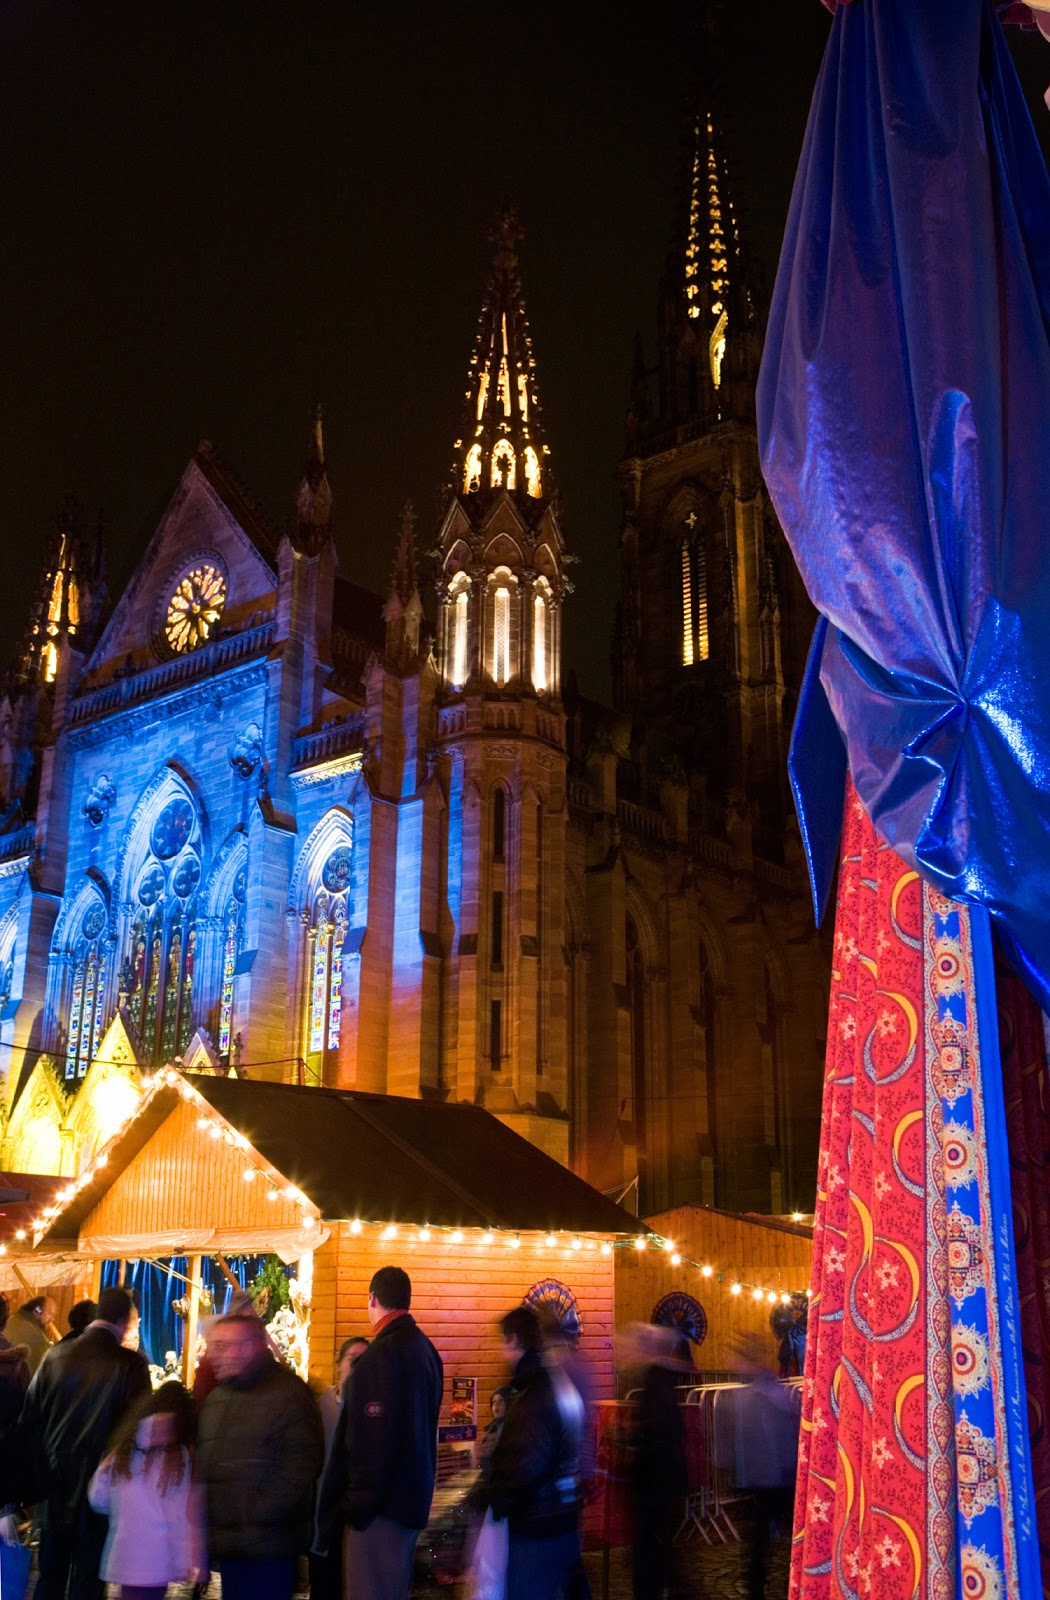 Renowned for its Christmas fabric, the Mulhouse Christmas market in Place de la Réunion is draped with festive garlands and fabrics. © CRTA - Meyer.